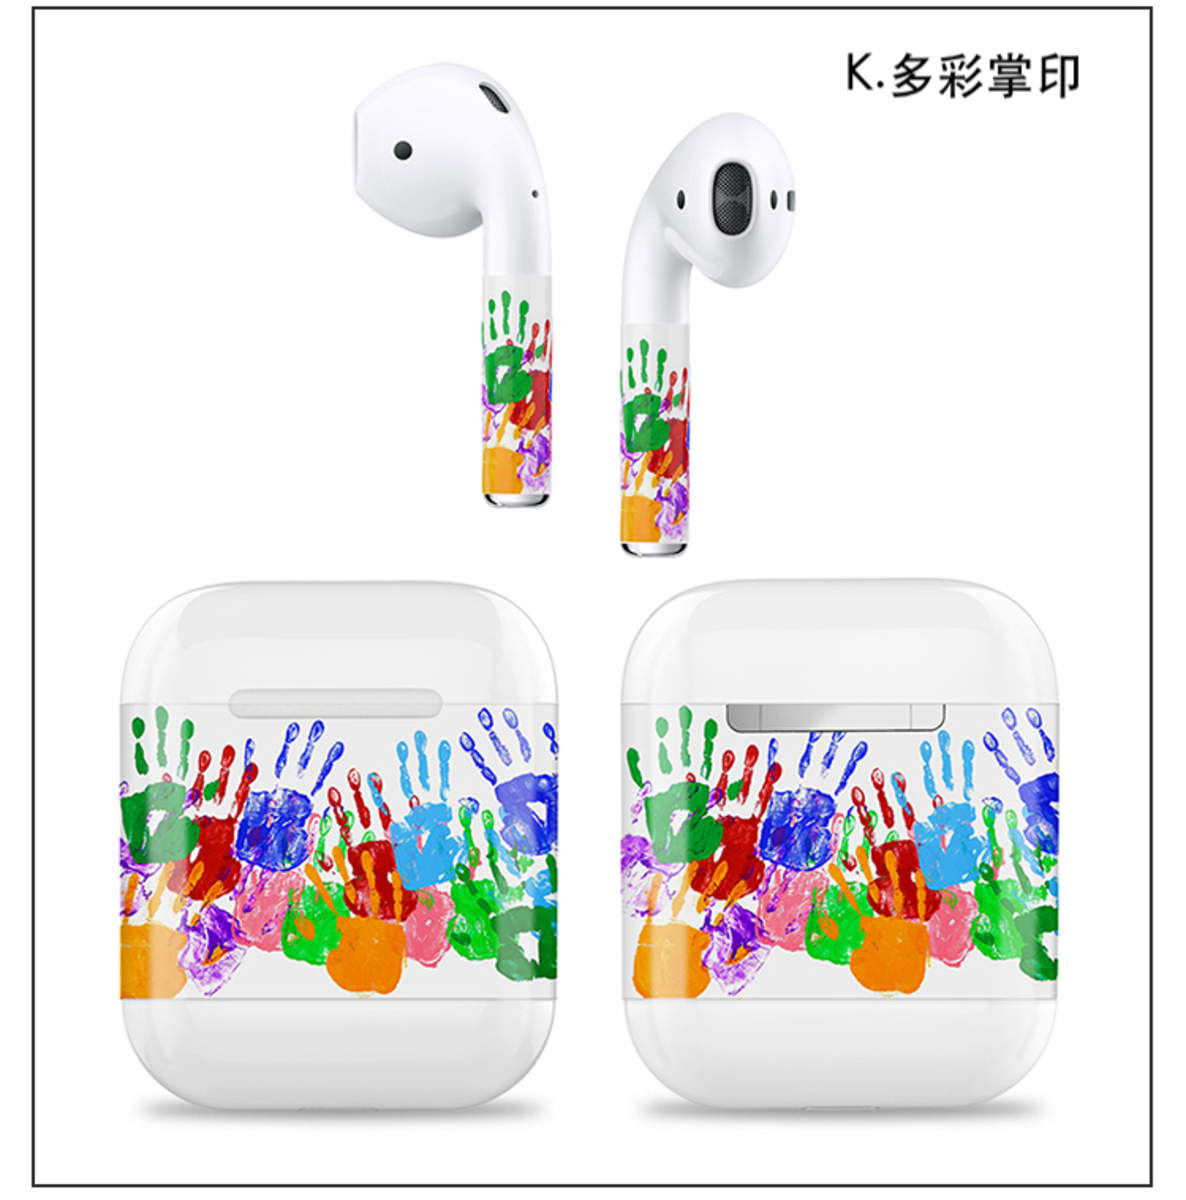 AhaStyle Decal Skins Sticker for Apple Airpods Style K